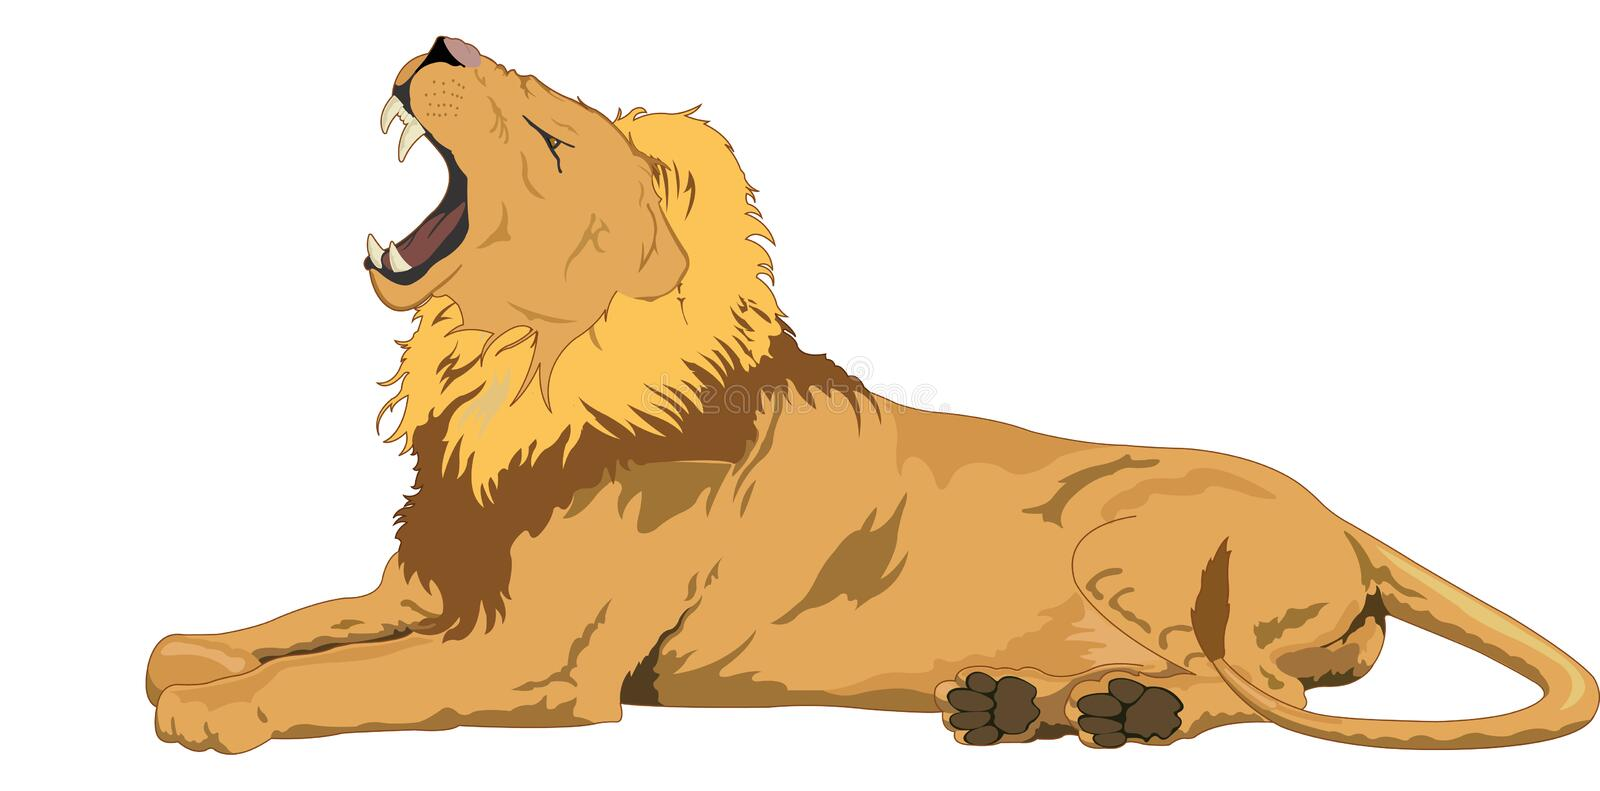 Lion, illustration. Male Lion Yawning, vector illustration royalty free illustration